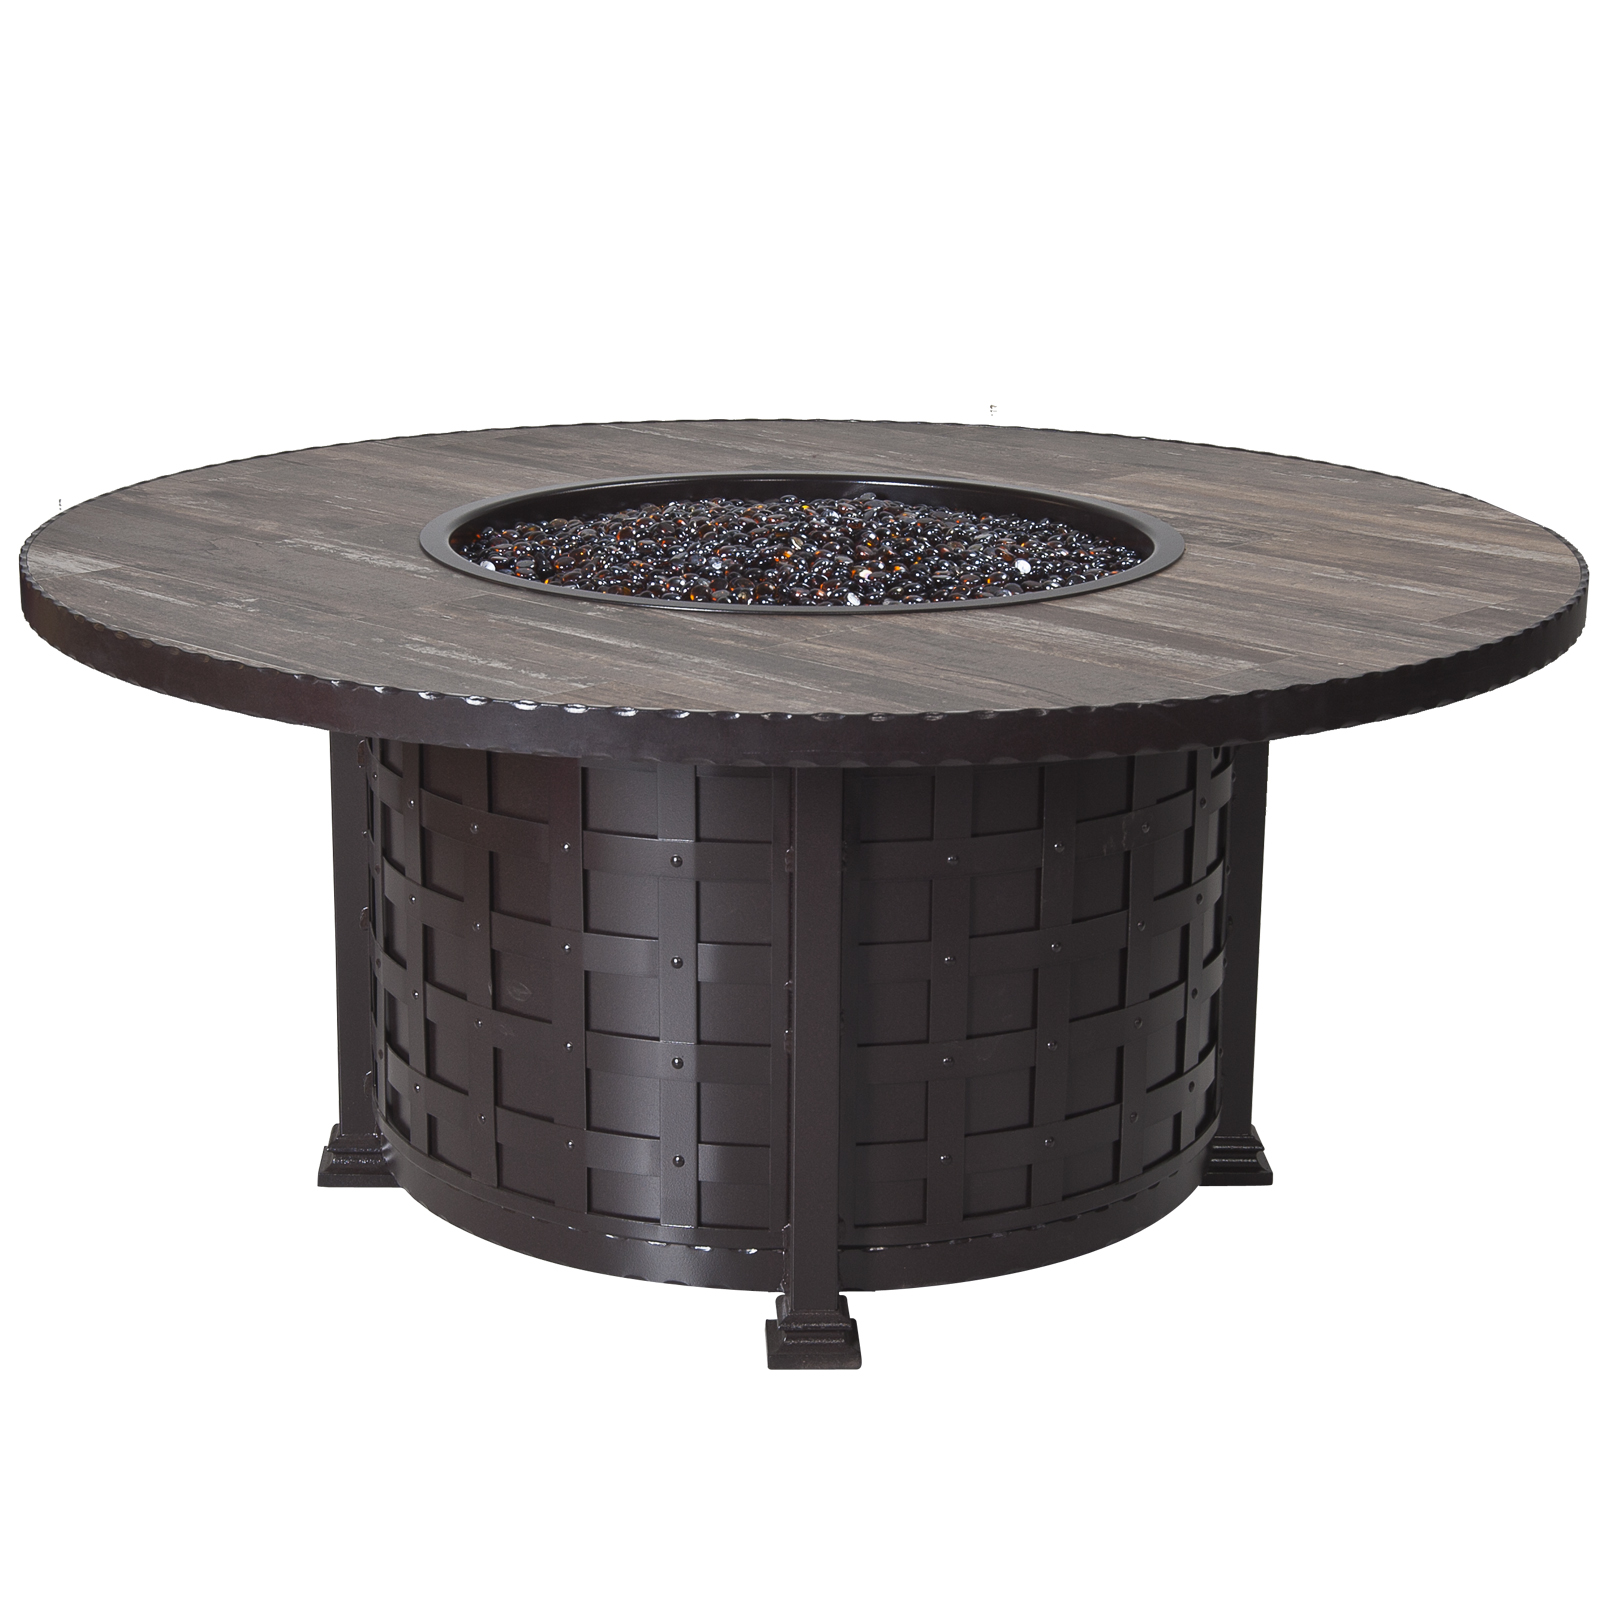 54-in-Chat-Height-Classico-Fire-Pit-51-10C-Classico-W-OW-Lee